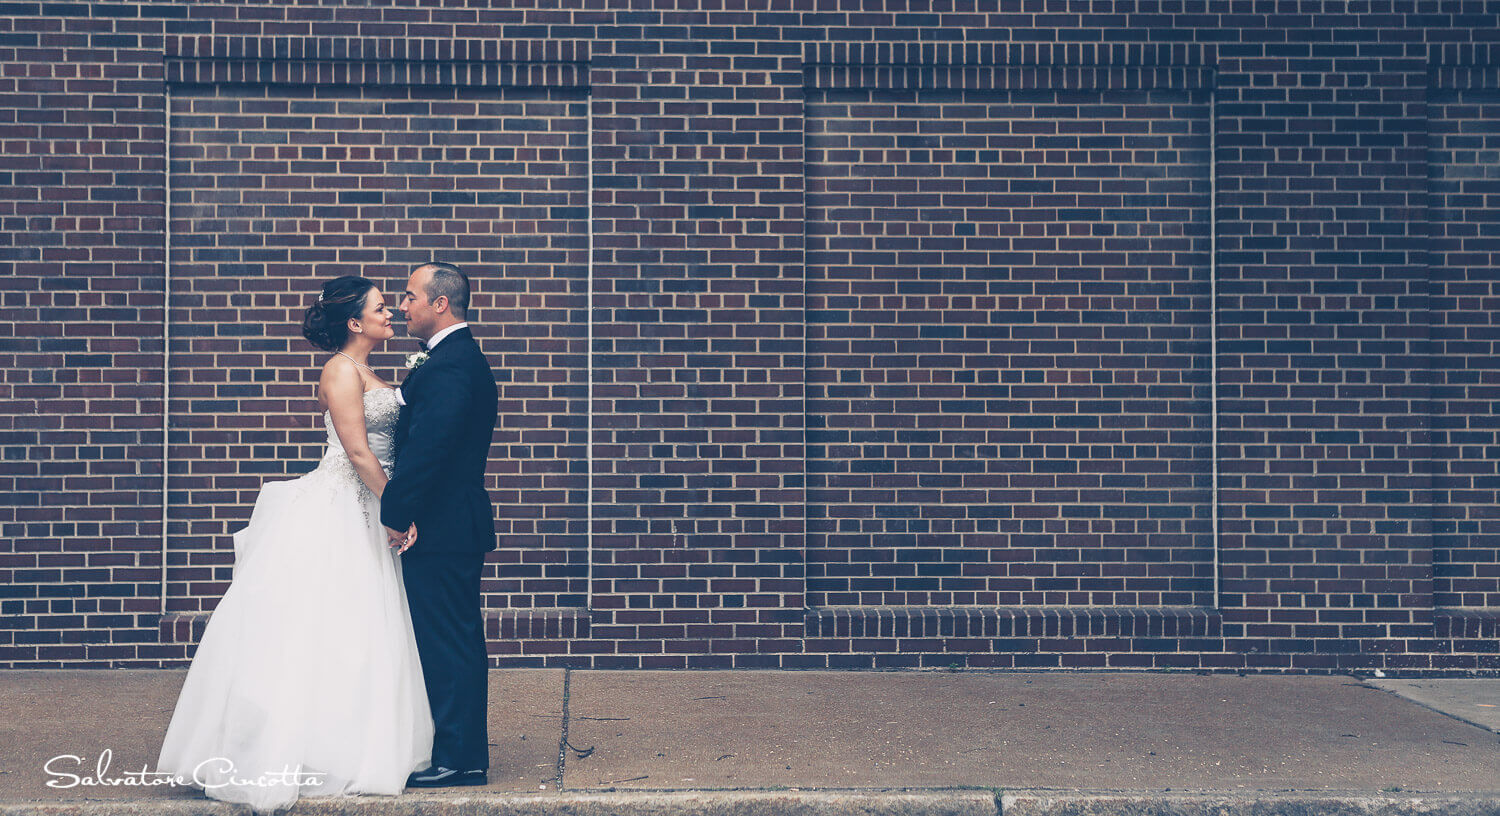 Meyer Wedding | St Louis